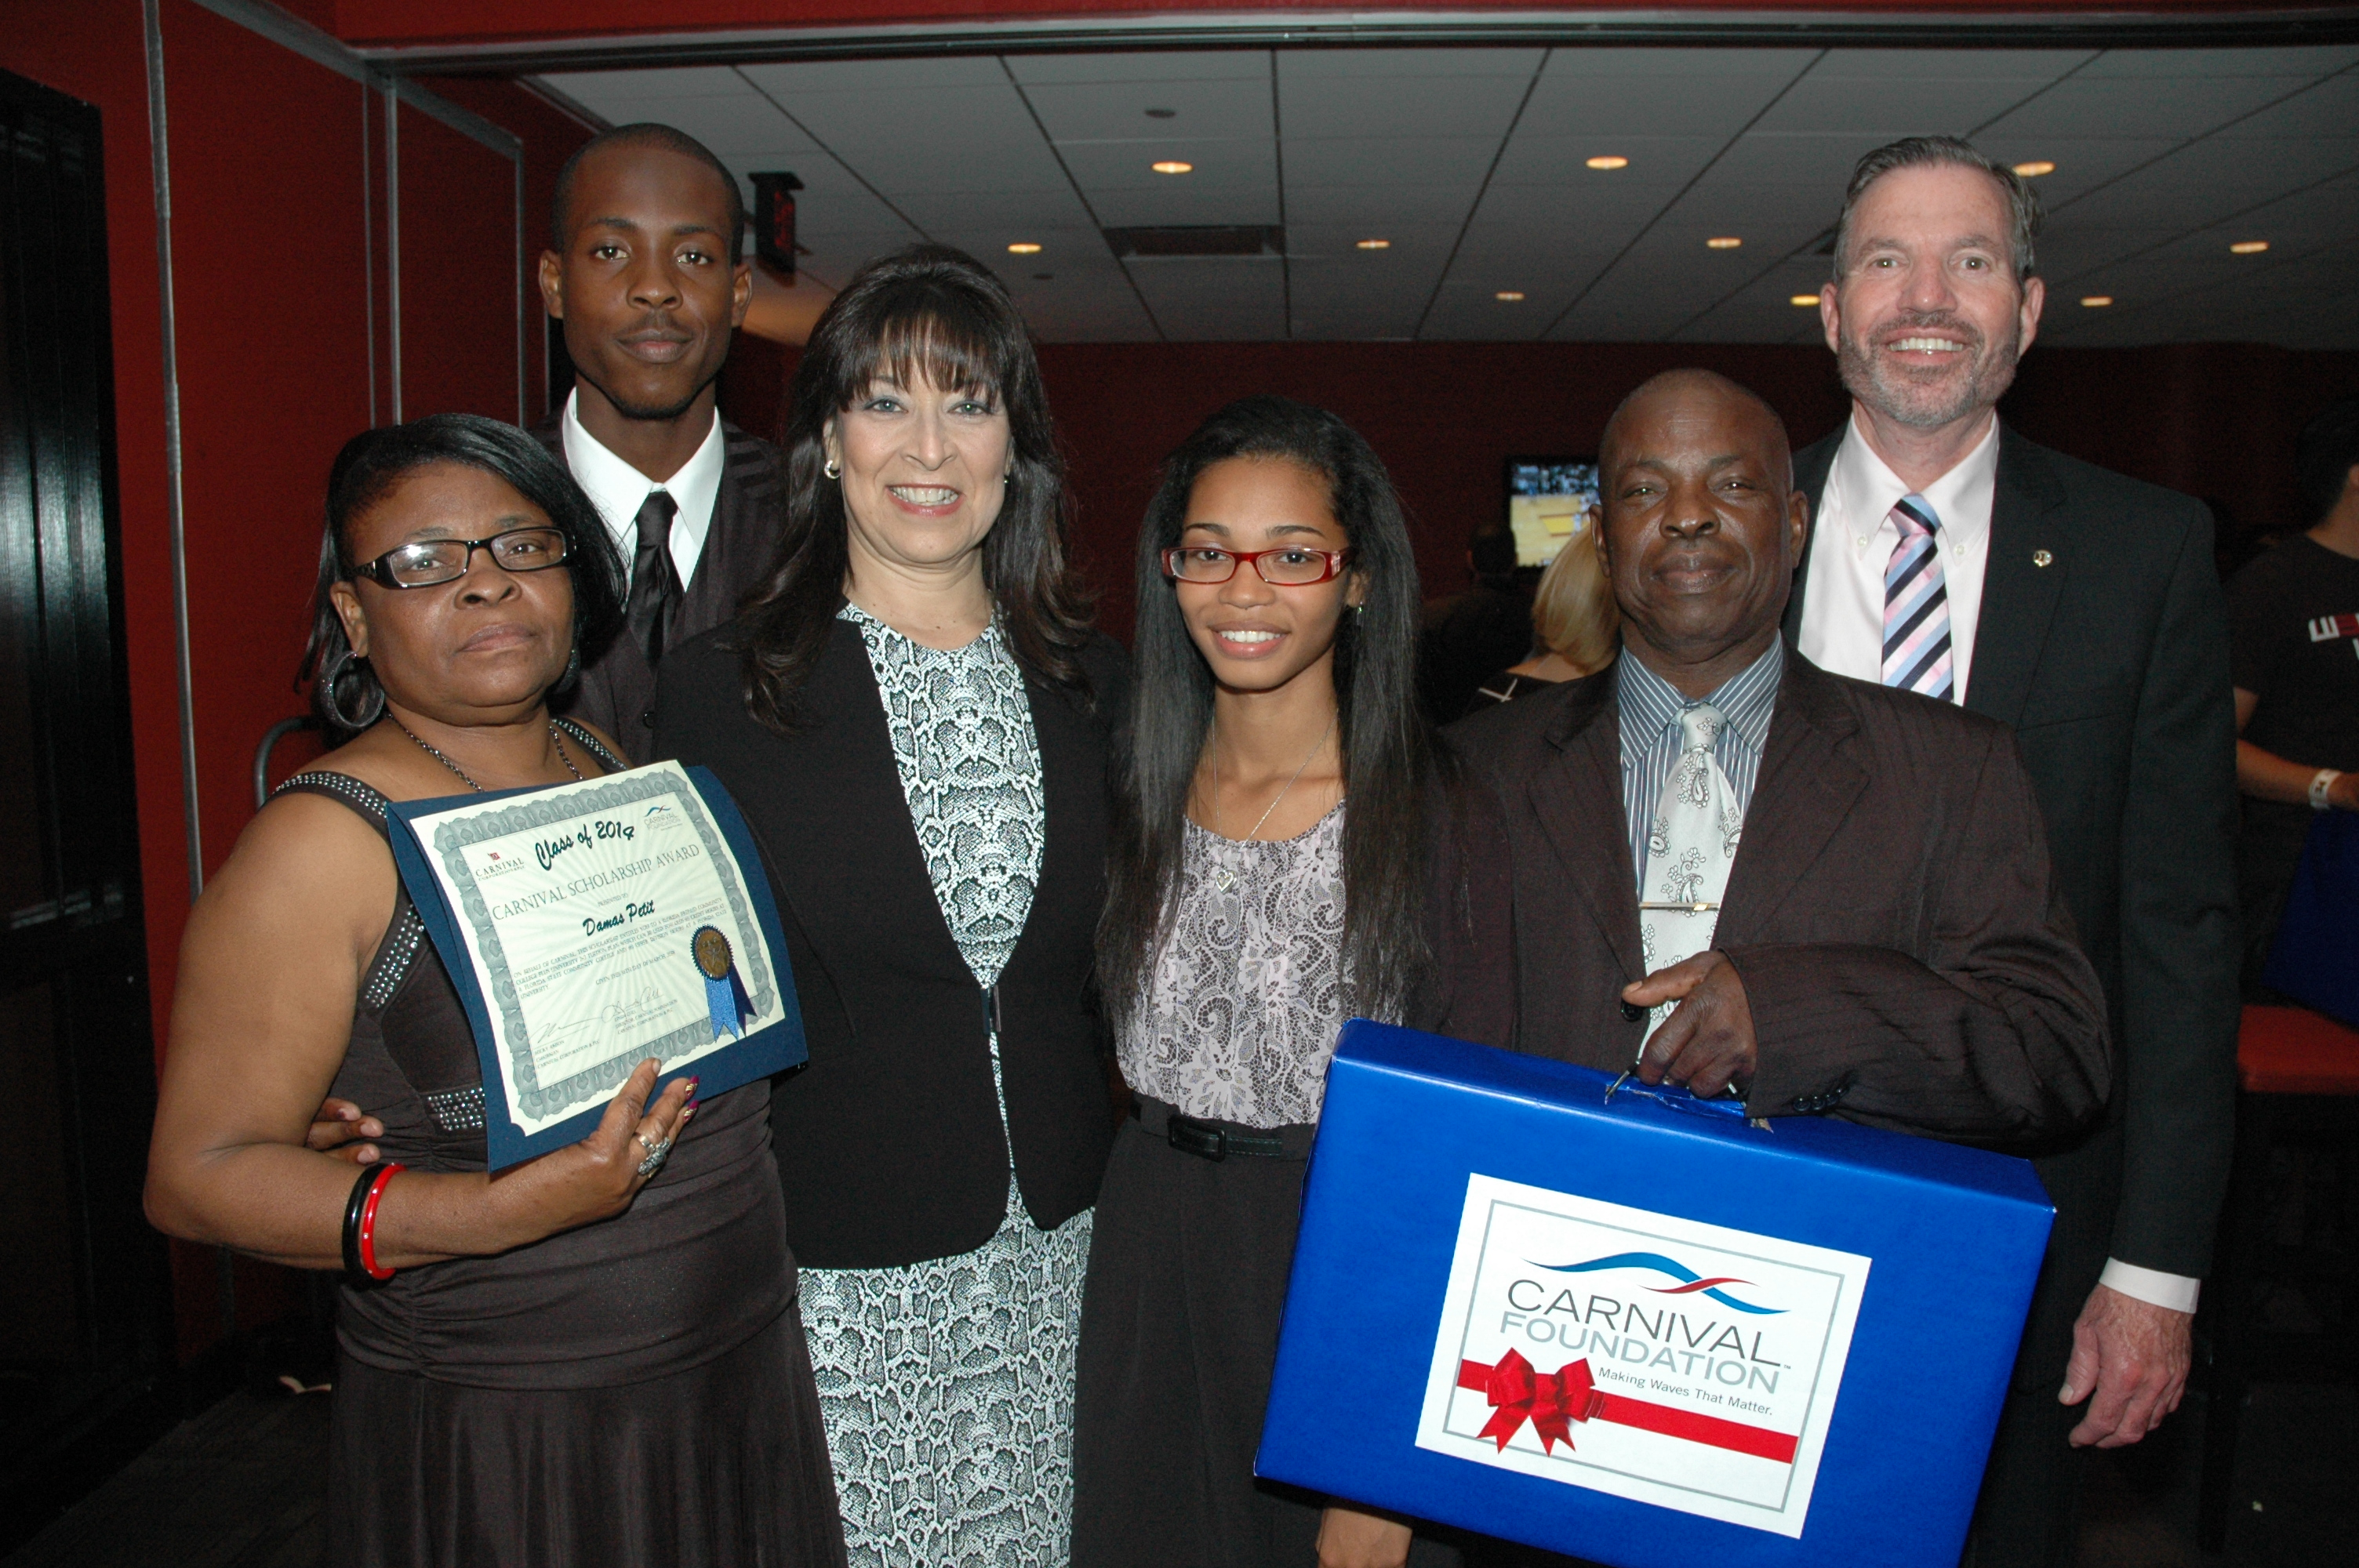 Carnival Foundation Awards Four-Year College Scholarships  to 16 South Florida High School Students